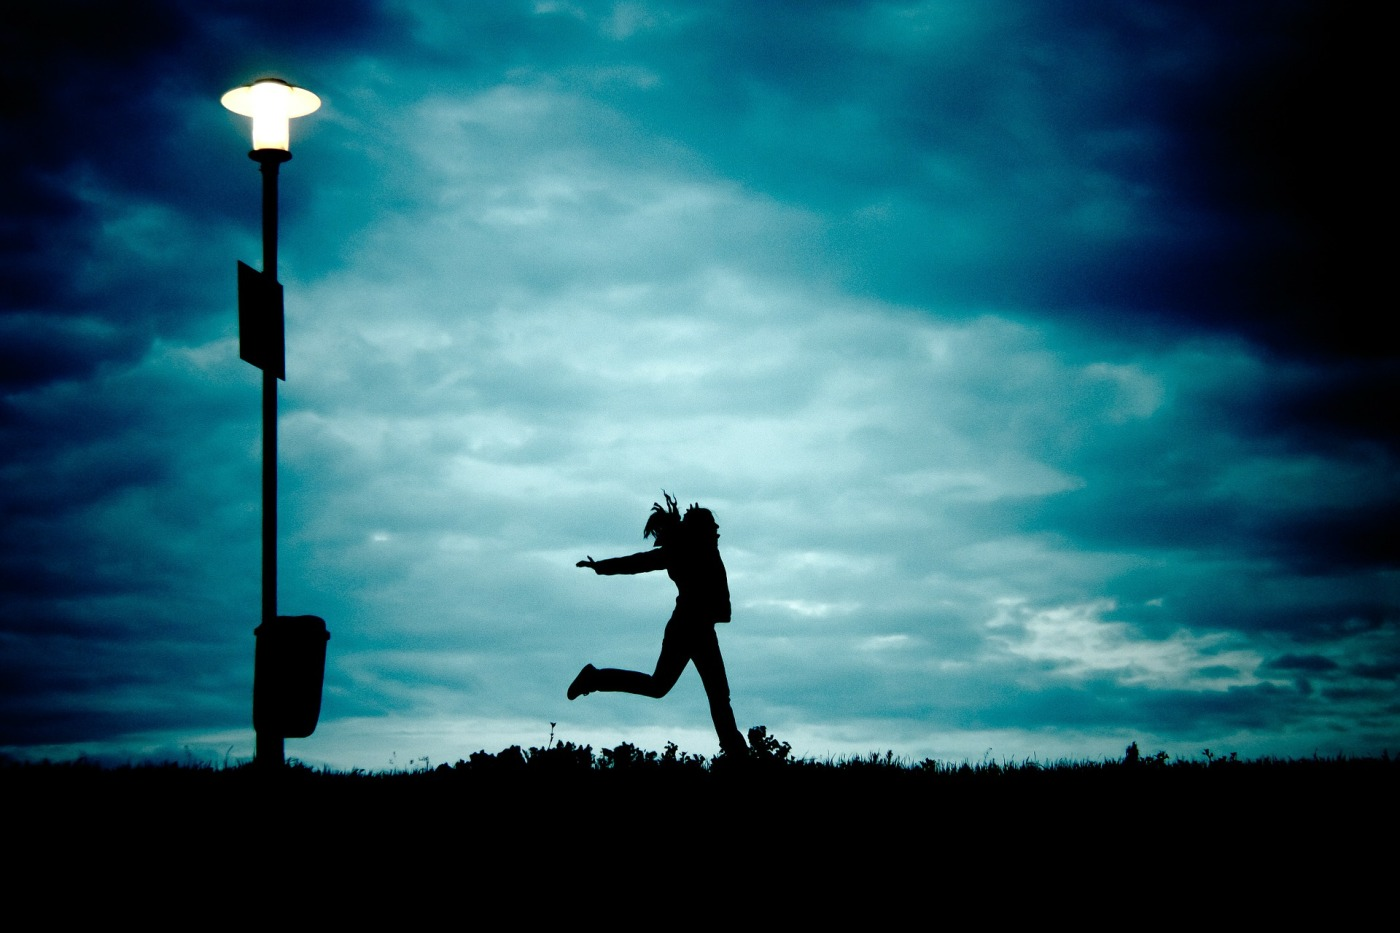 shadow silhouette girl dancing in dark night | the lonely tribalist